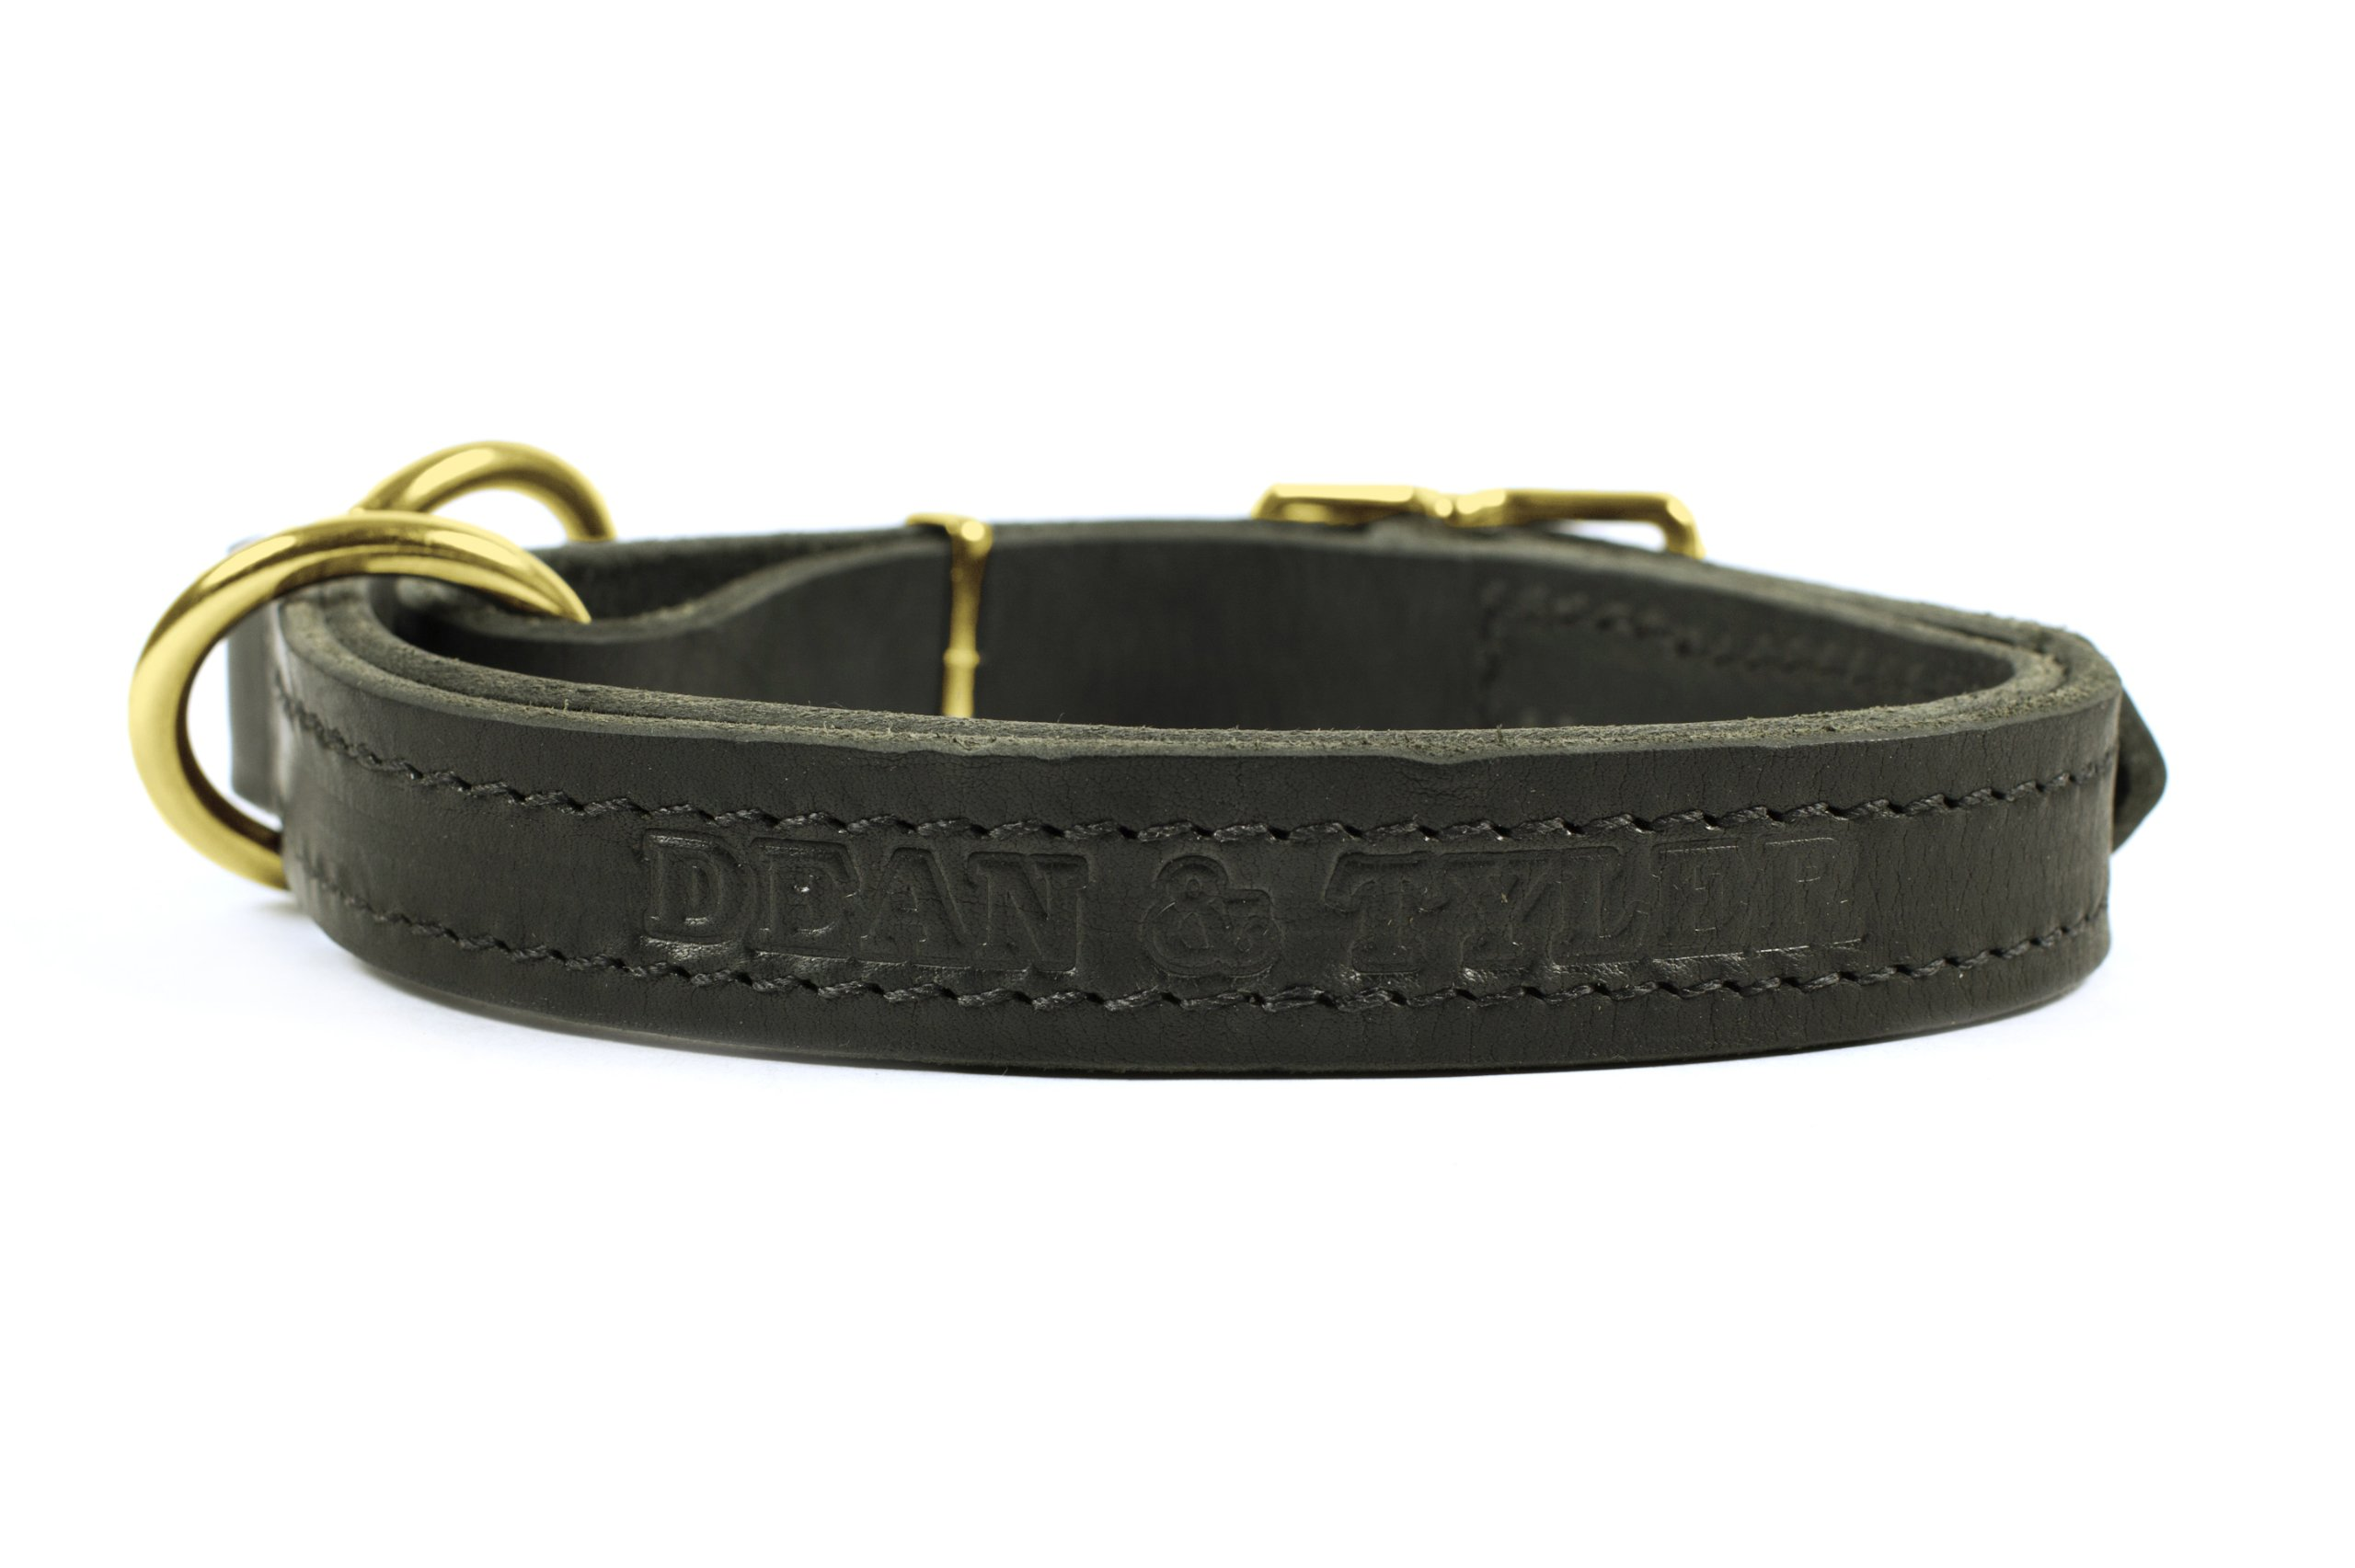 Dean and Tyler ''STRICTLY BUSINESS'', 2-in-1 Dog Choke Collar with Solid Brass Hardware - Black - Size 22-Inch by 1-Inch - Fits Neck 20-Inch to 22-Inch